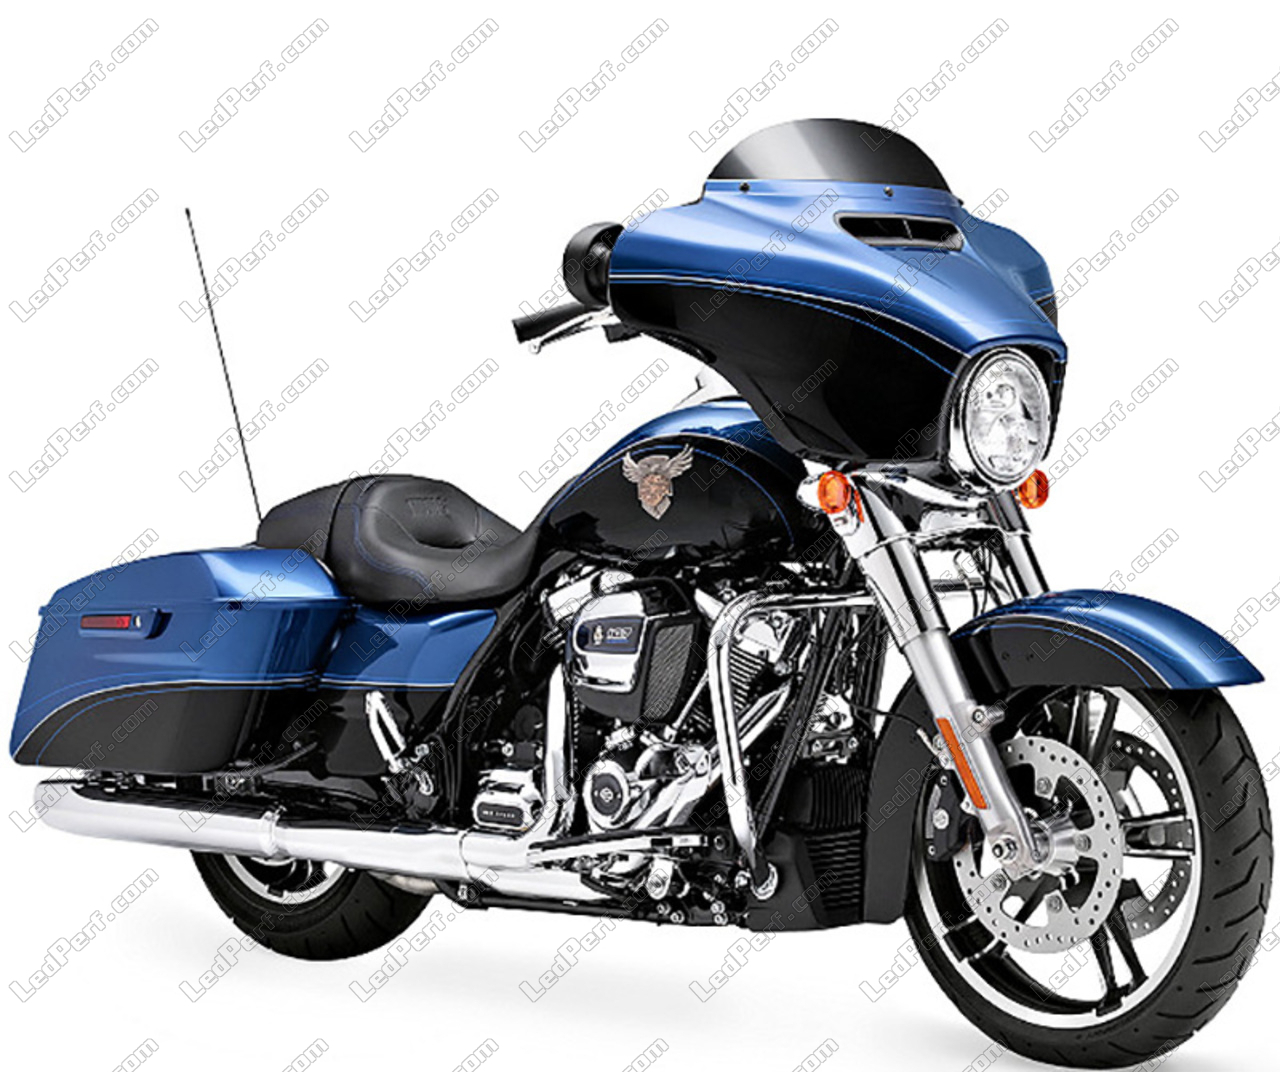 Led Headlight For Harley Davidson Street Glide 1745 Round Motorcycle Optics Approved